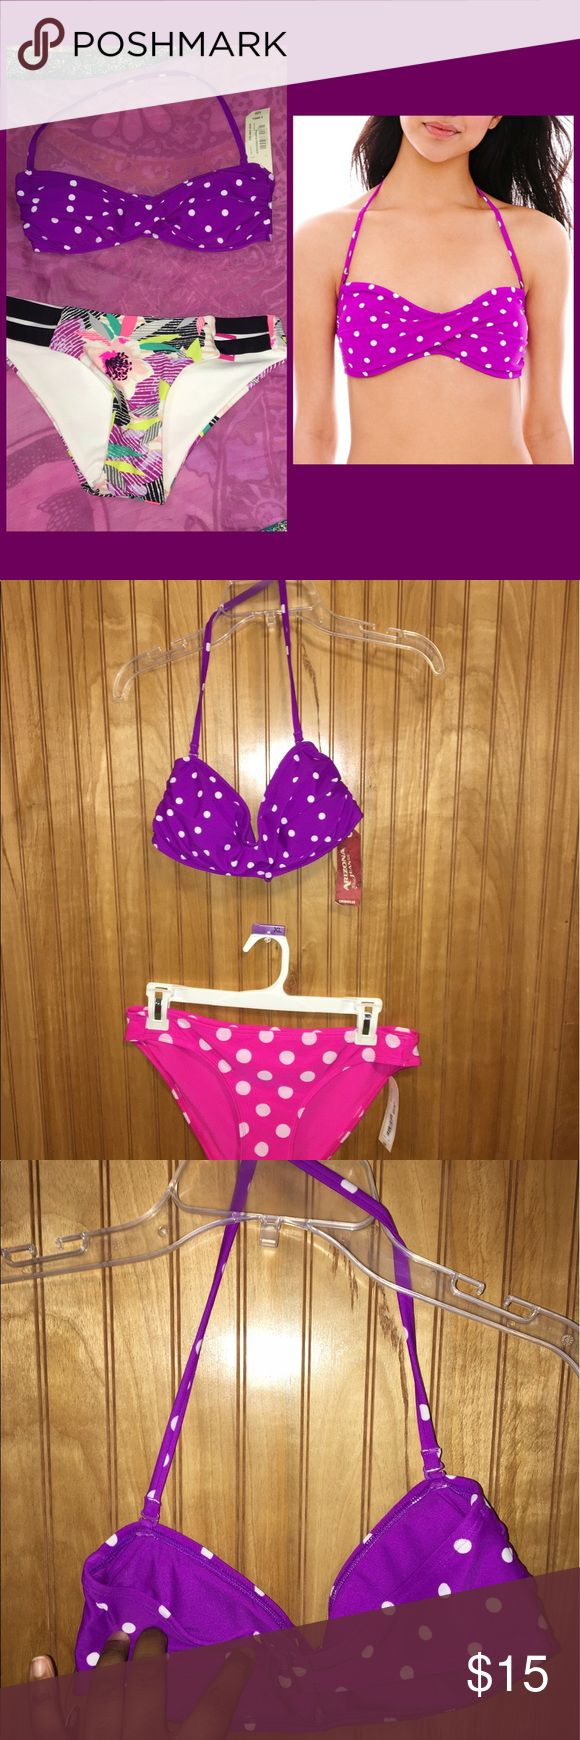 """BOGO 🆓Arizona Polka Dot Bandeau Bikini Top Sz XS Super cute bandeau Polka dot bikini top. Has light padding and adjustable and removeable halter. Size is XS, which is best for small bust (A or small B cup;30-32"""" Bust). NWT. Sz XS Arizona Jean Company Swim Bikinis"""